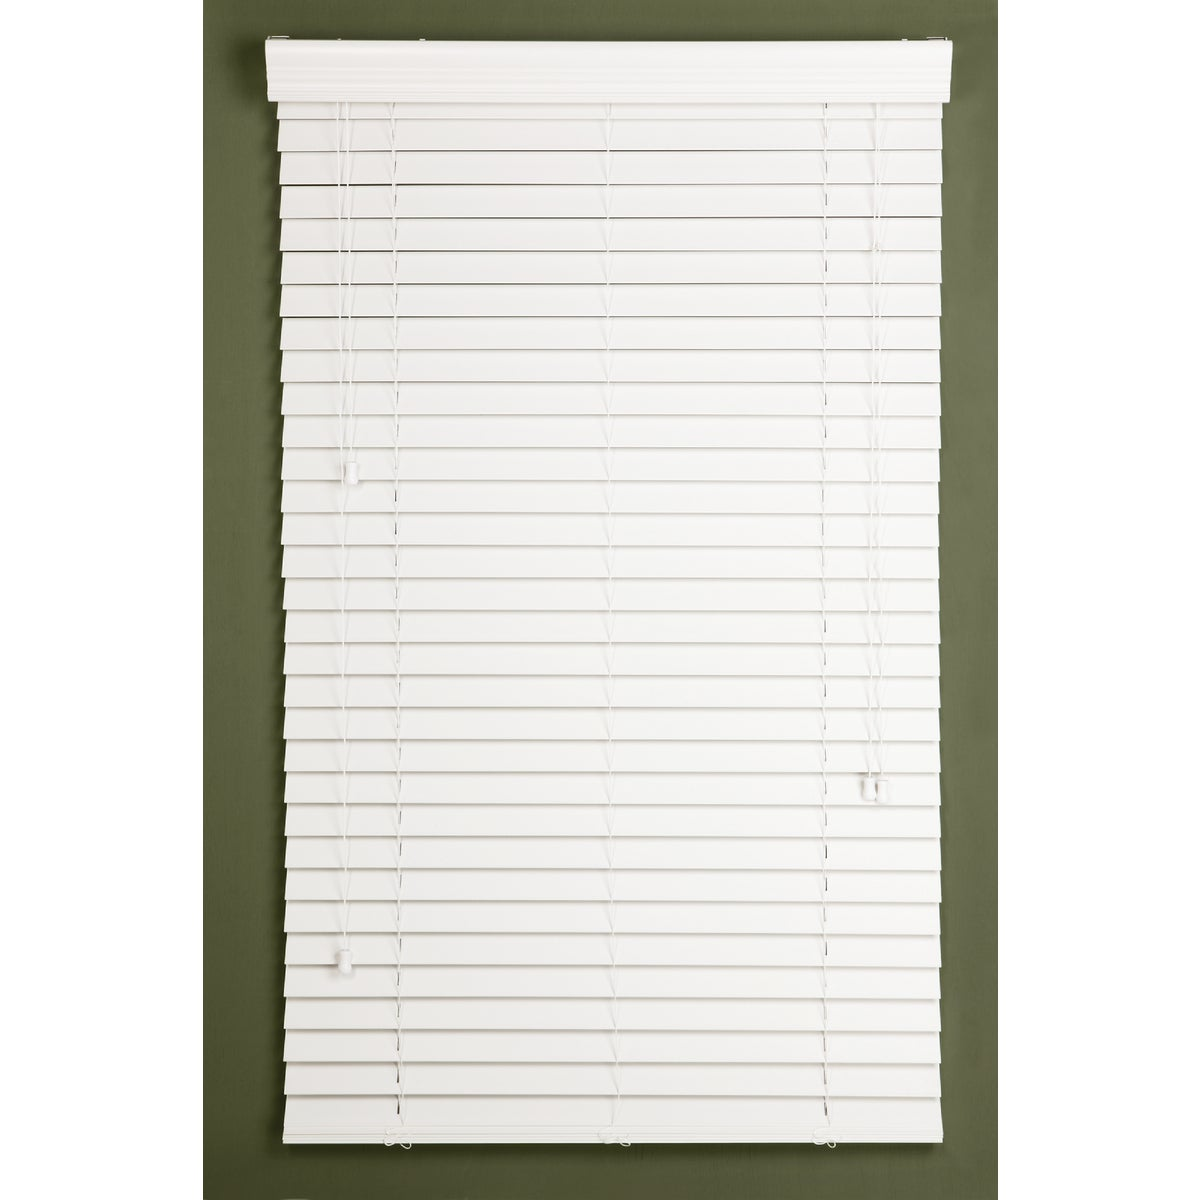 29X64 WHITE FAUX BLIND - 628075 by Lotus Wind Incom